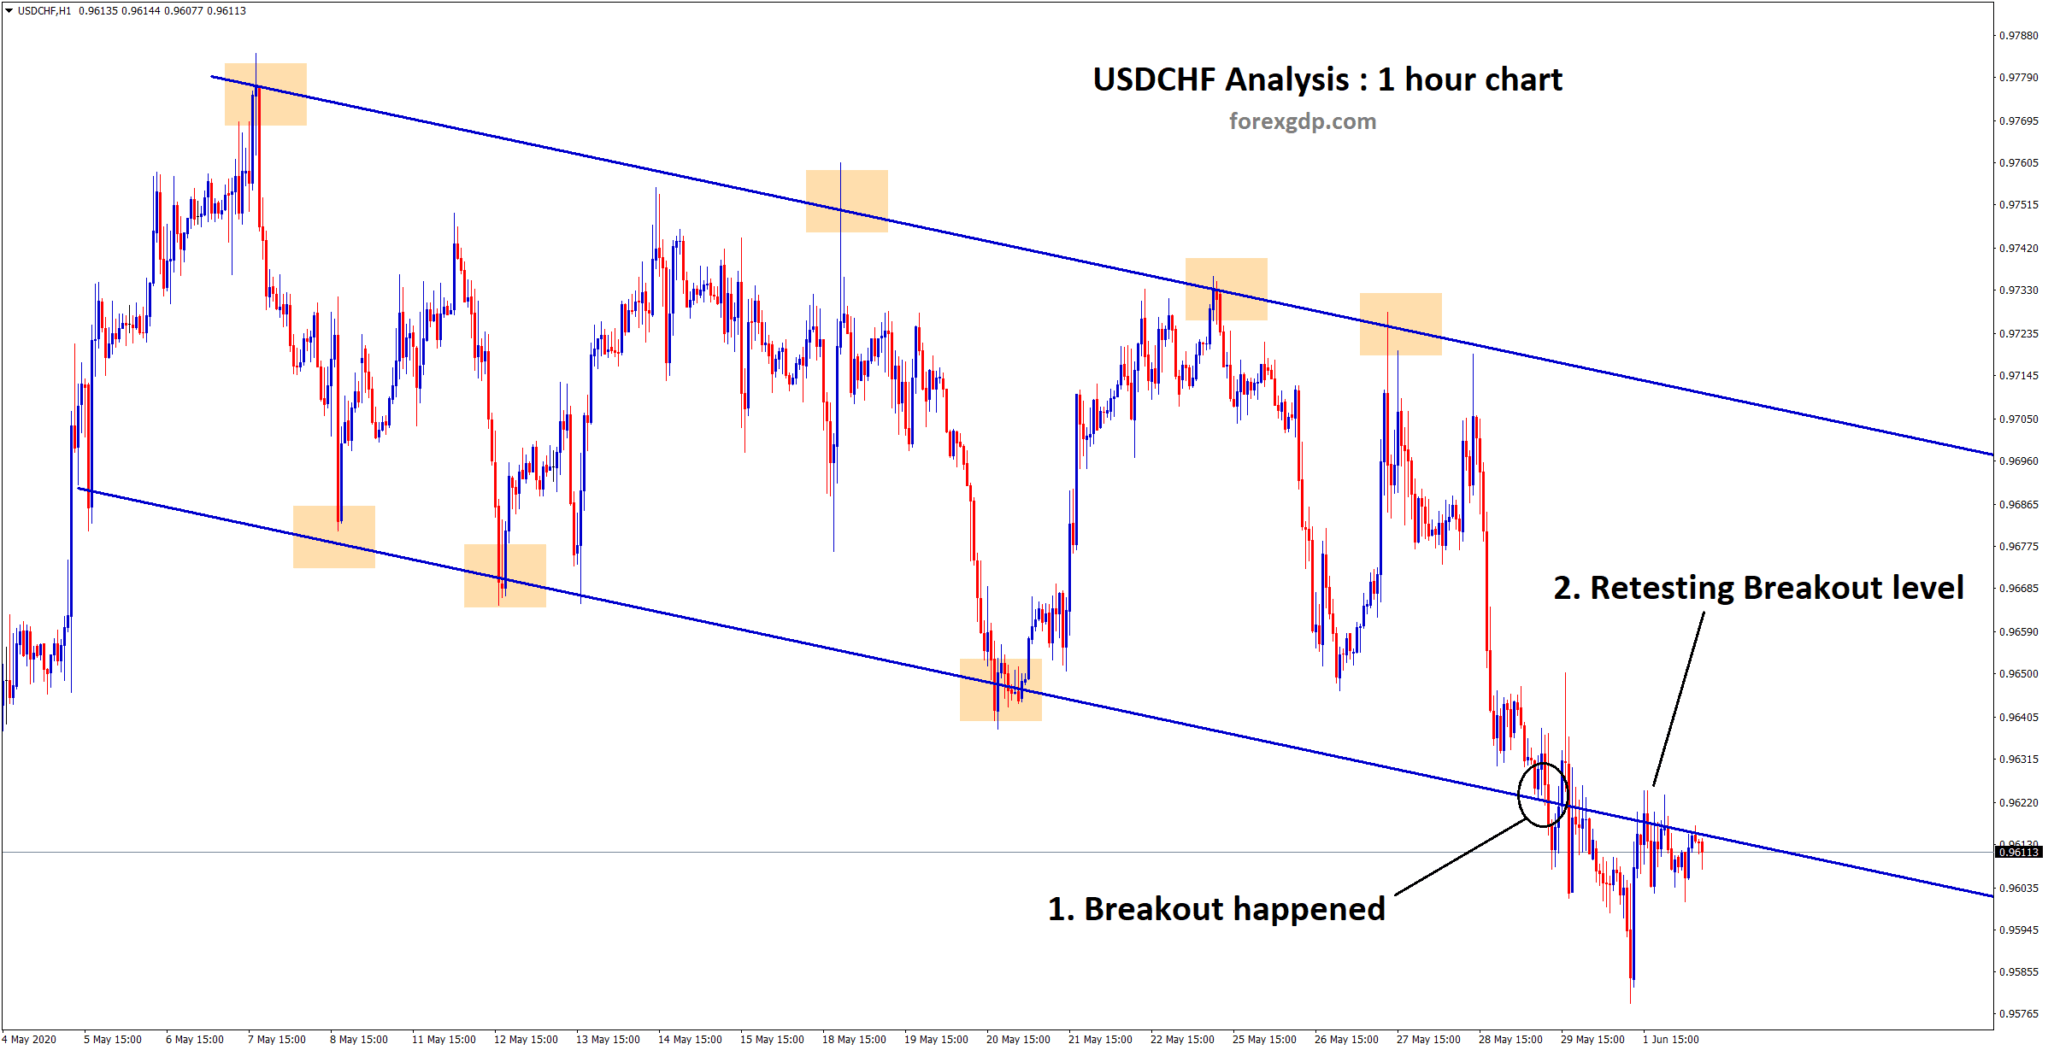 Down trend line broken and retest on USDCHF h1